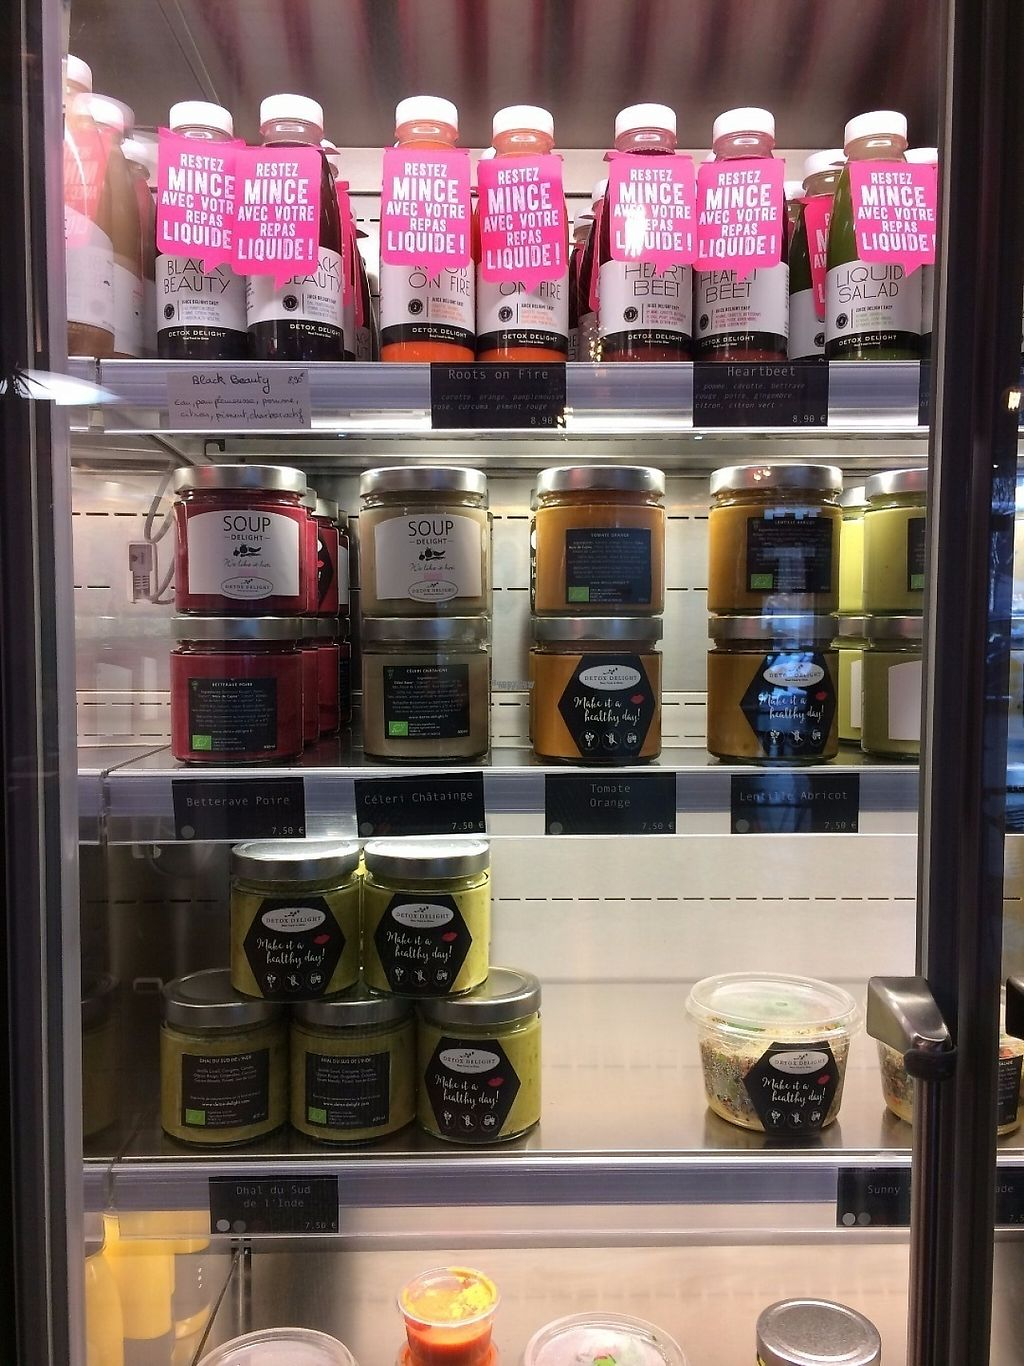 "Photo of Detox Delight - CMG Sports Club  by <a href=""/members/profile/LisaCupcake"">LisaCupcake</a> <br/>Soups <br/> January 22, 2017  - <a href='/contact/abuse/image/84239/214756'>Report</a>"